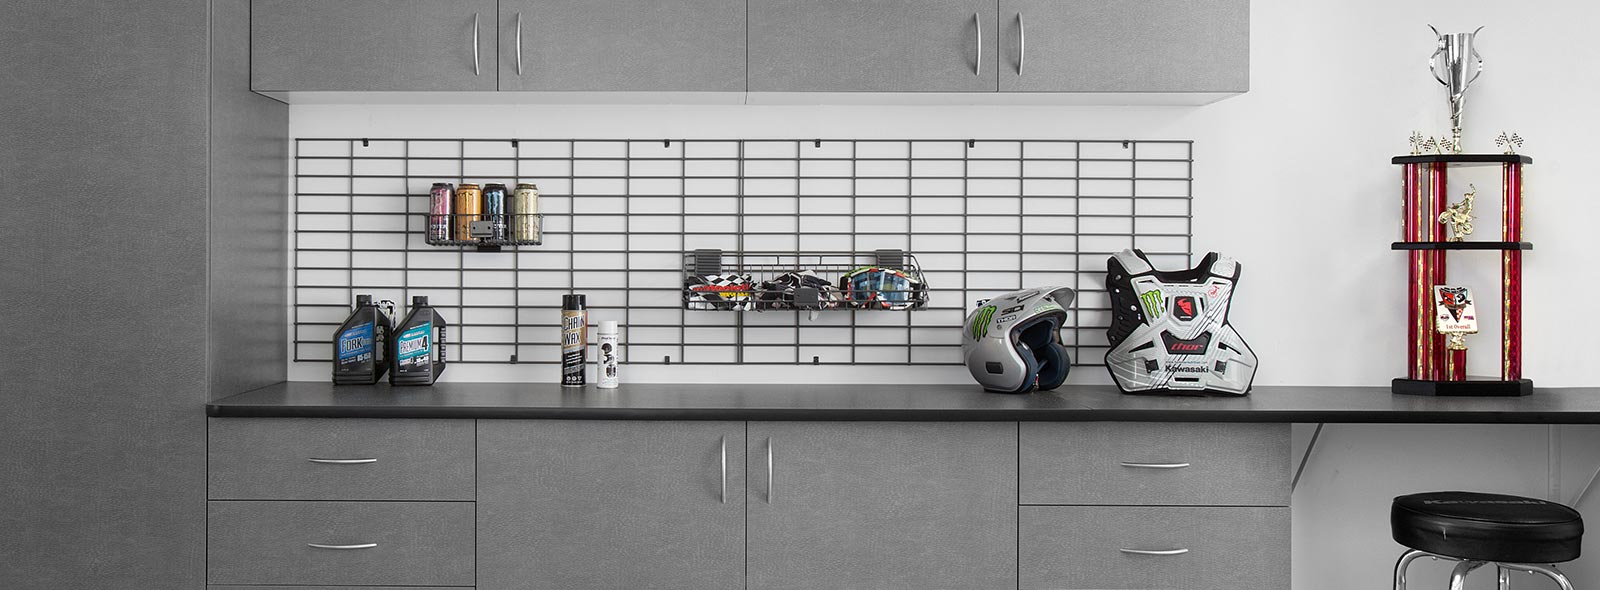 me slot lowes tarim cabinets pegboard medium of garage storage system size photo organizer slatwall wall